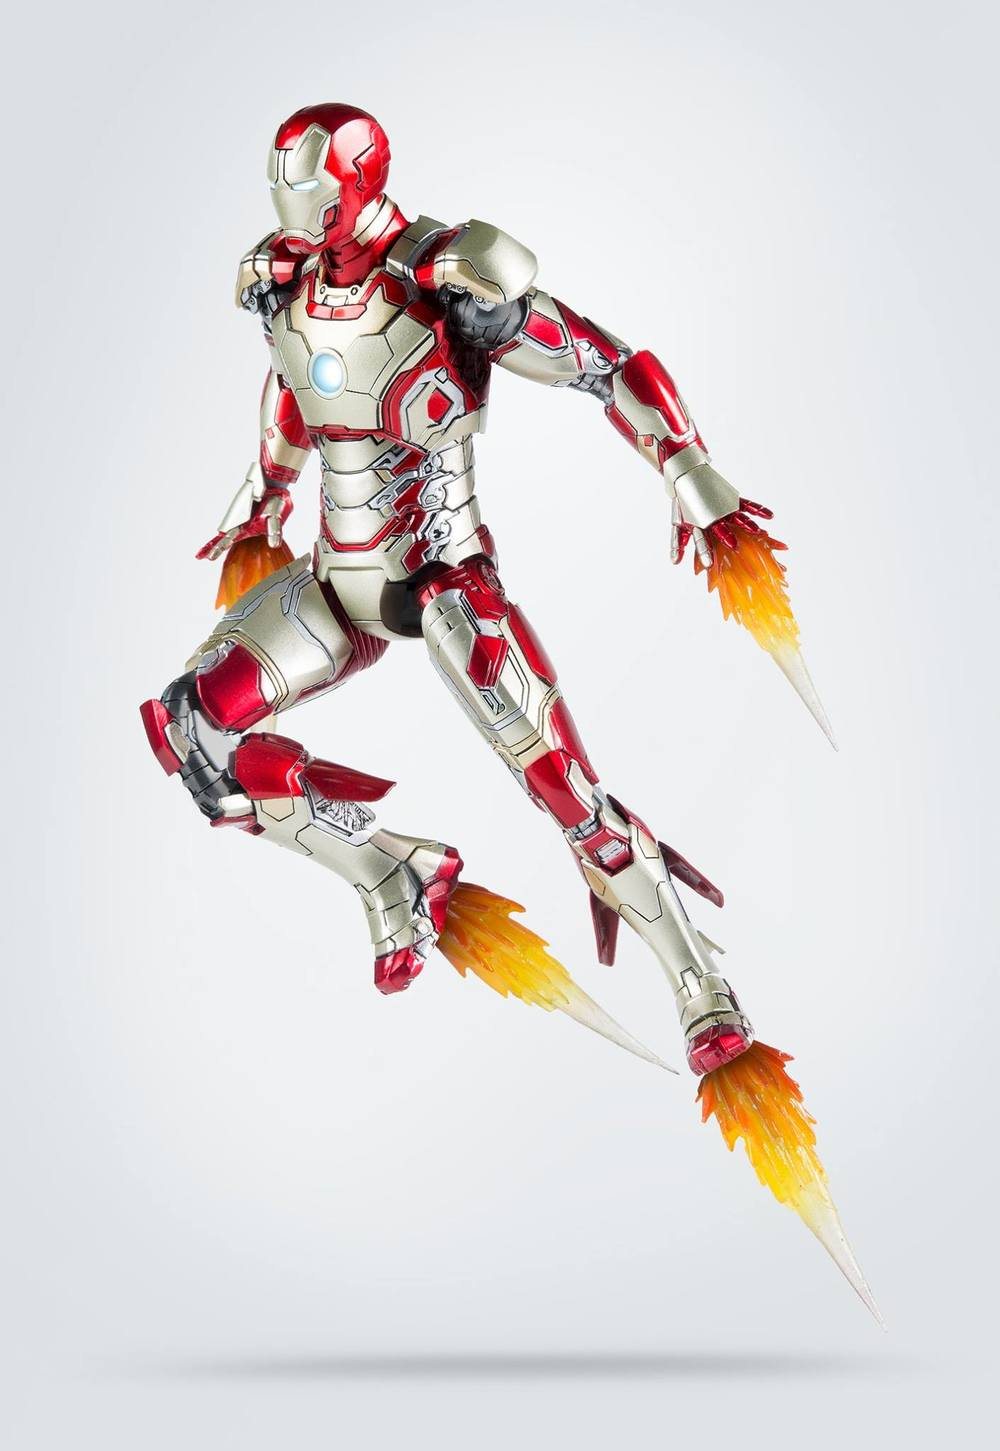 Comicave-Iron-Man-Mark-42-Armor-002 (1).jpg